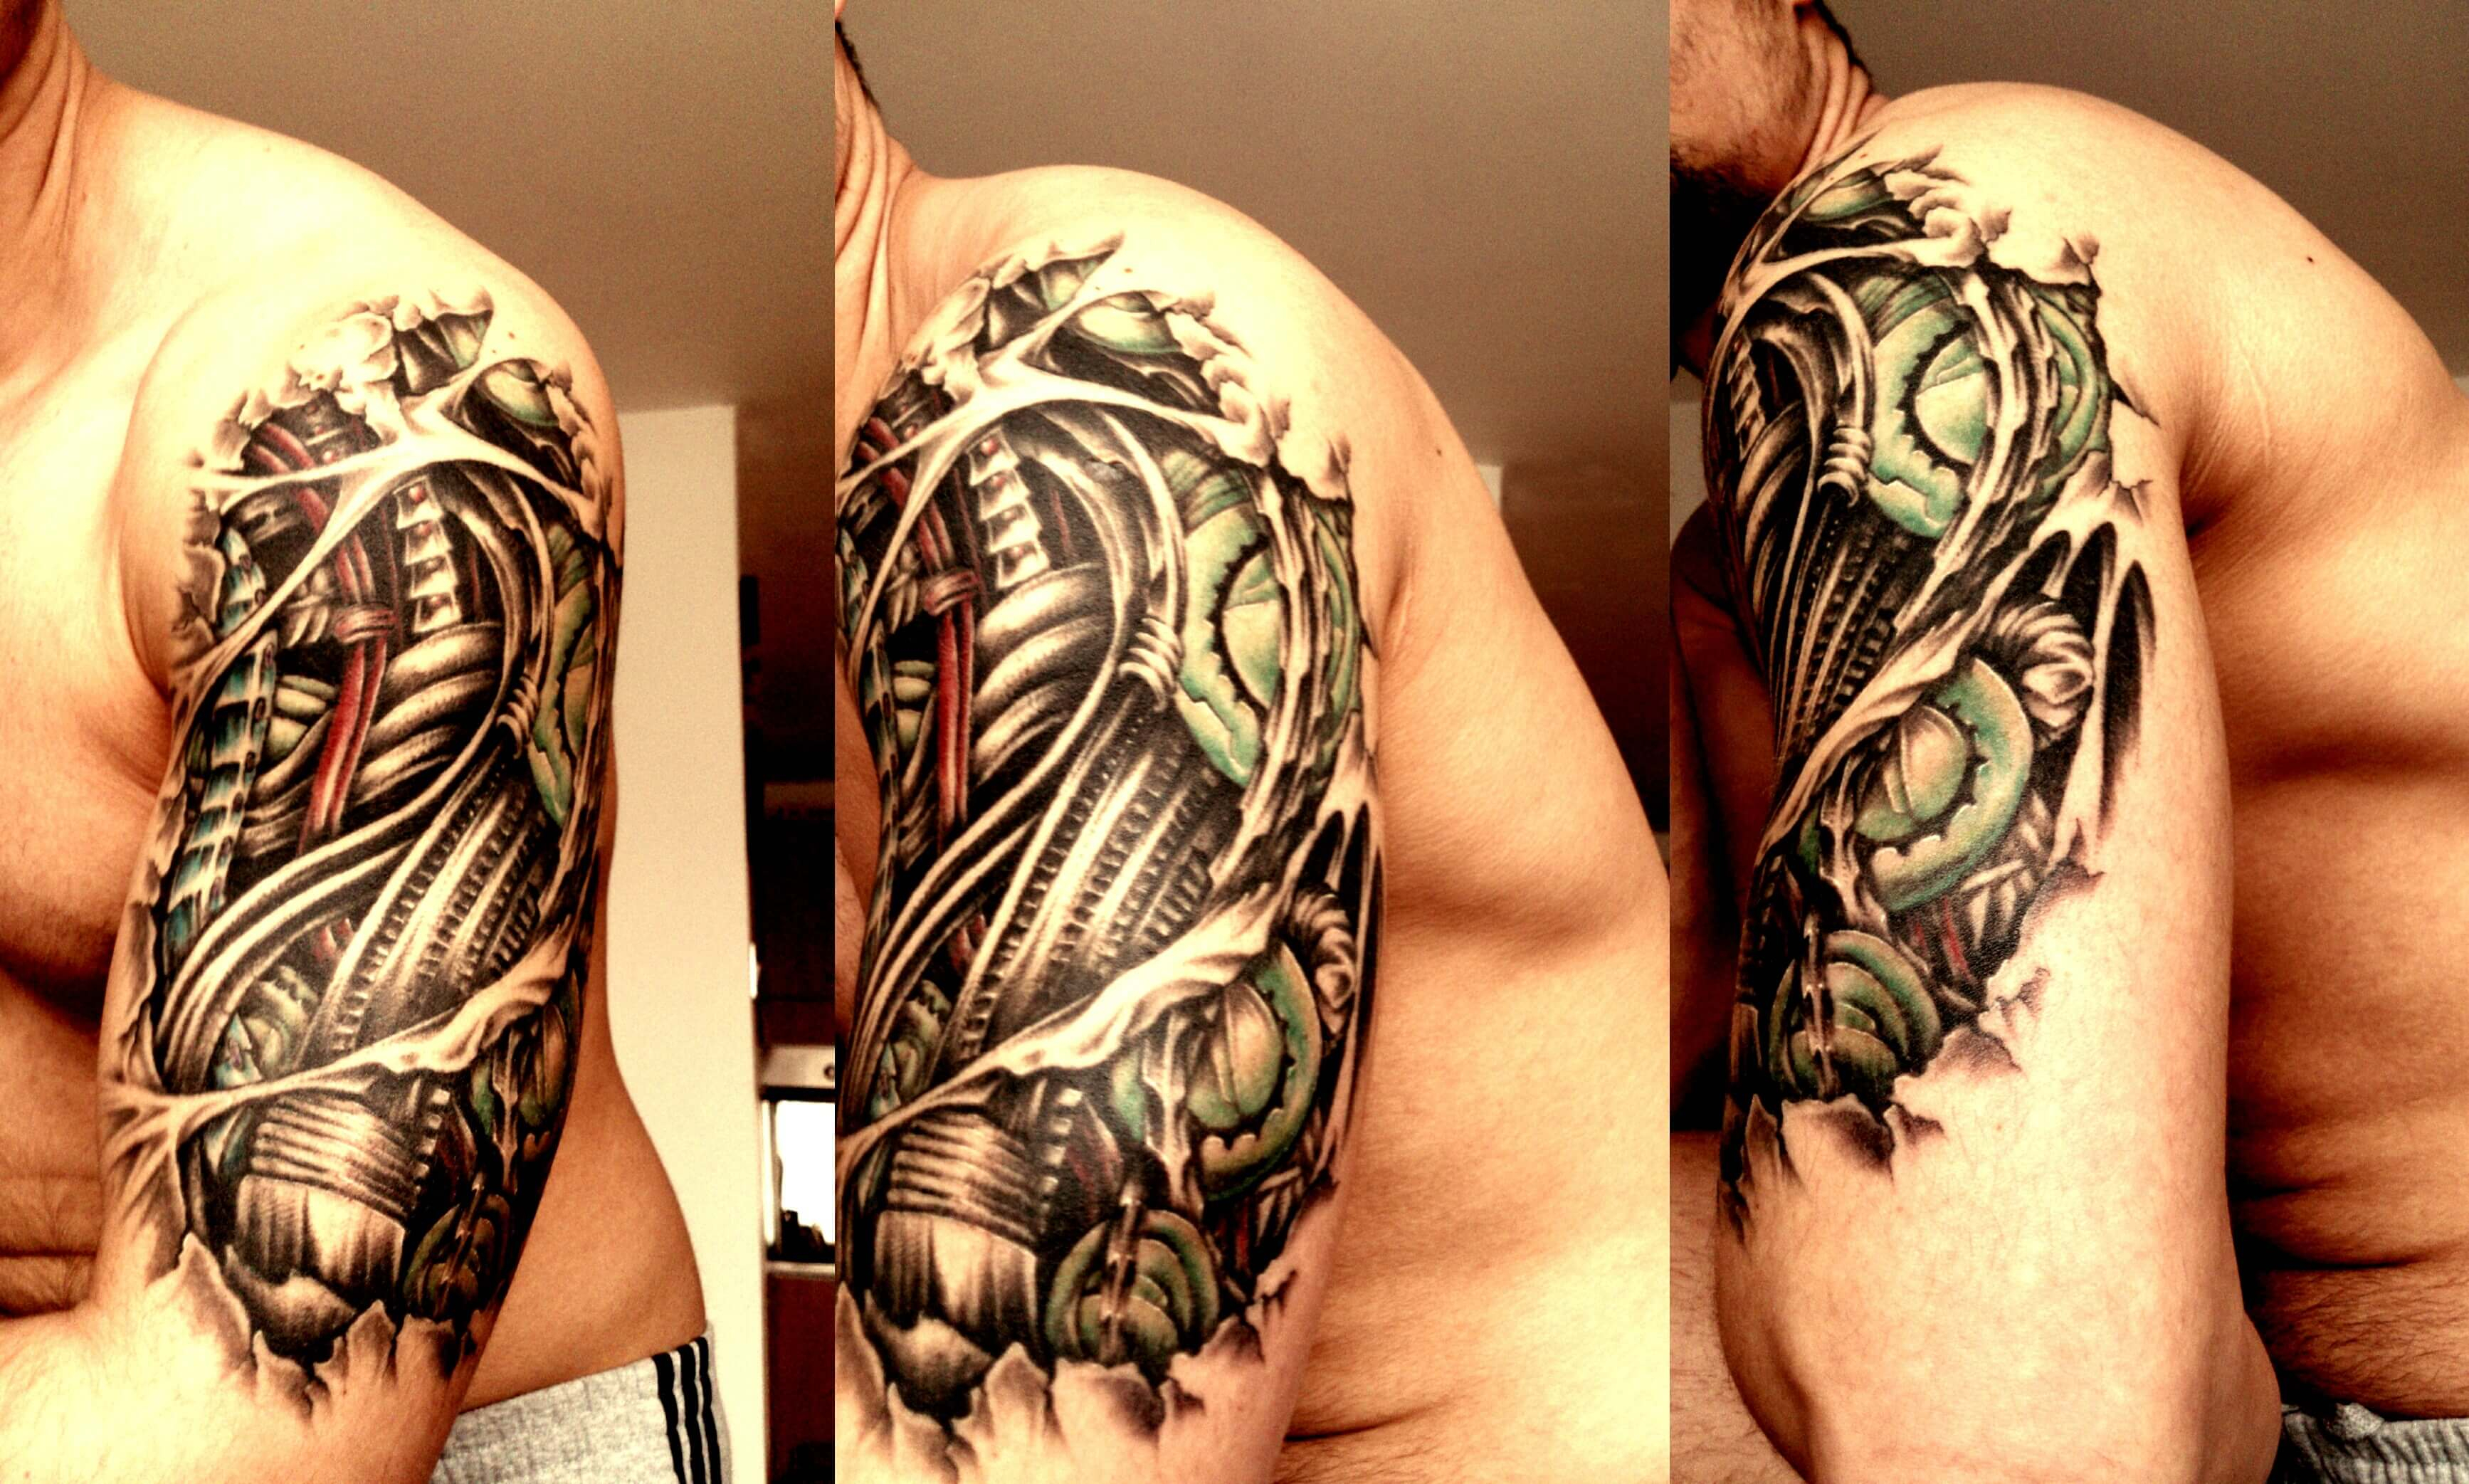 Top 80 Best Biomechanical Tattoos For Men Improb in measurements 3469 X 2085